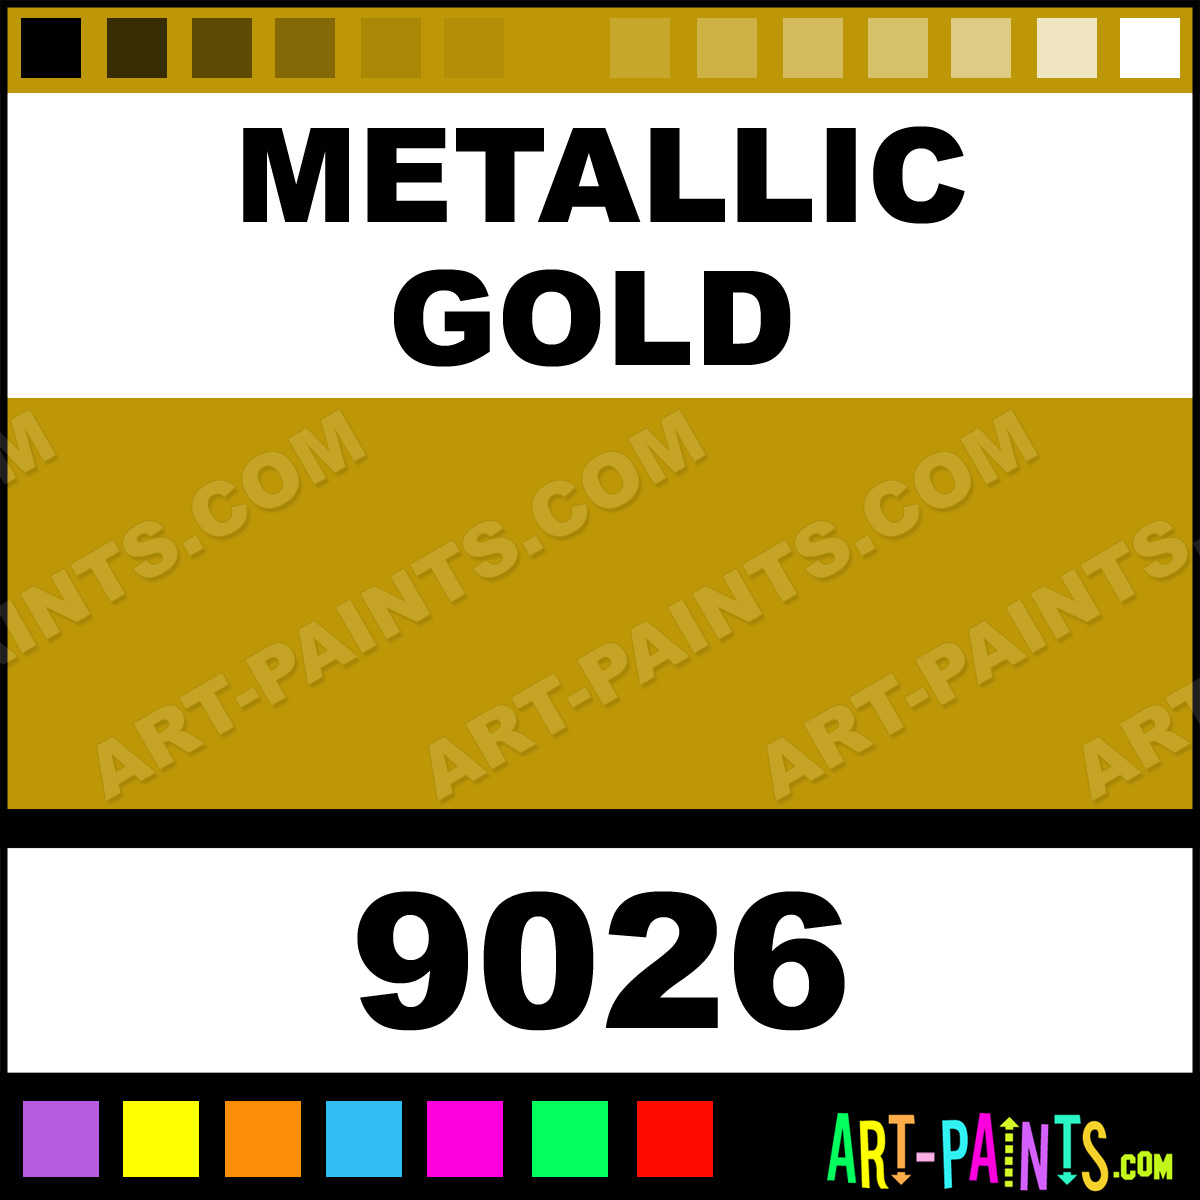 Metallic gold gloss tempera stained glass window paints 9026 metallic gold nvjuhfo Image collections